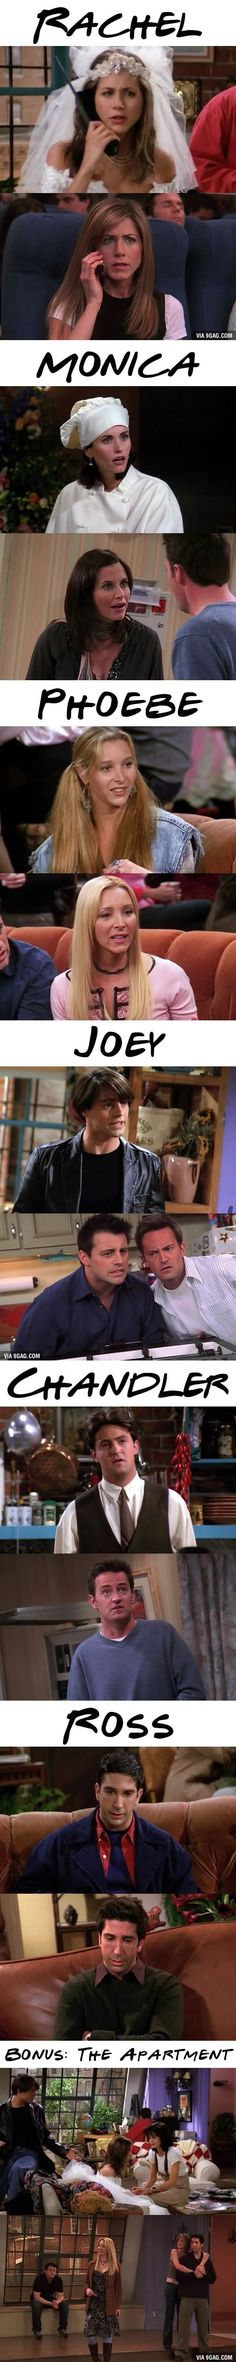 "The Cast Of ""Friends"" On The First Episode (1994) Vs. The Last Episode (2004) I think I'm going to cry."